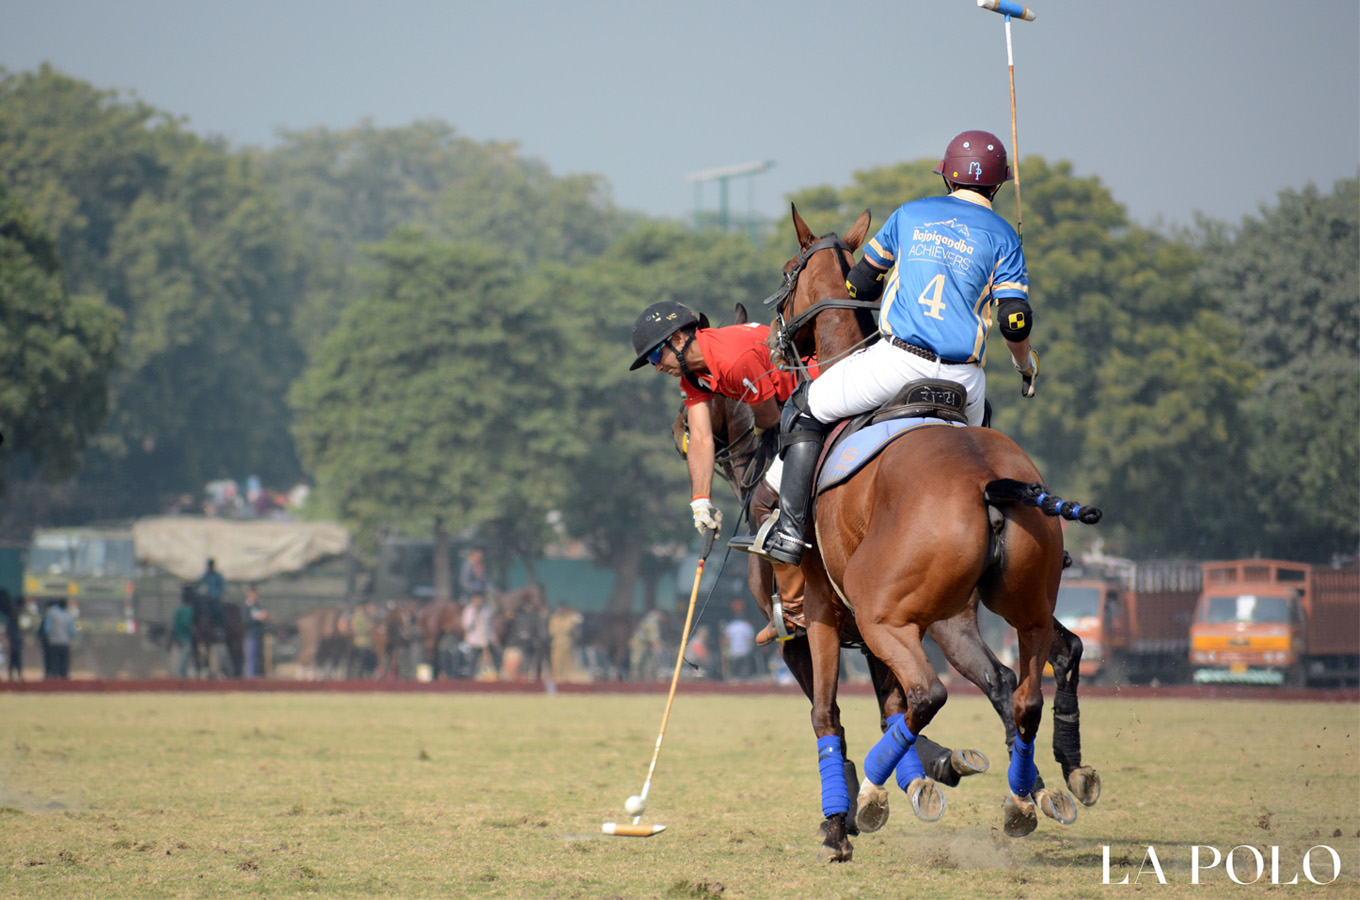 The Finals Of The Last Tournament Of Delhi Polo Season 2018